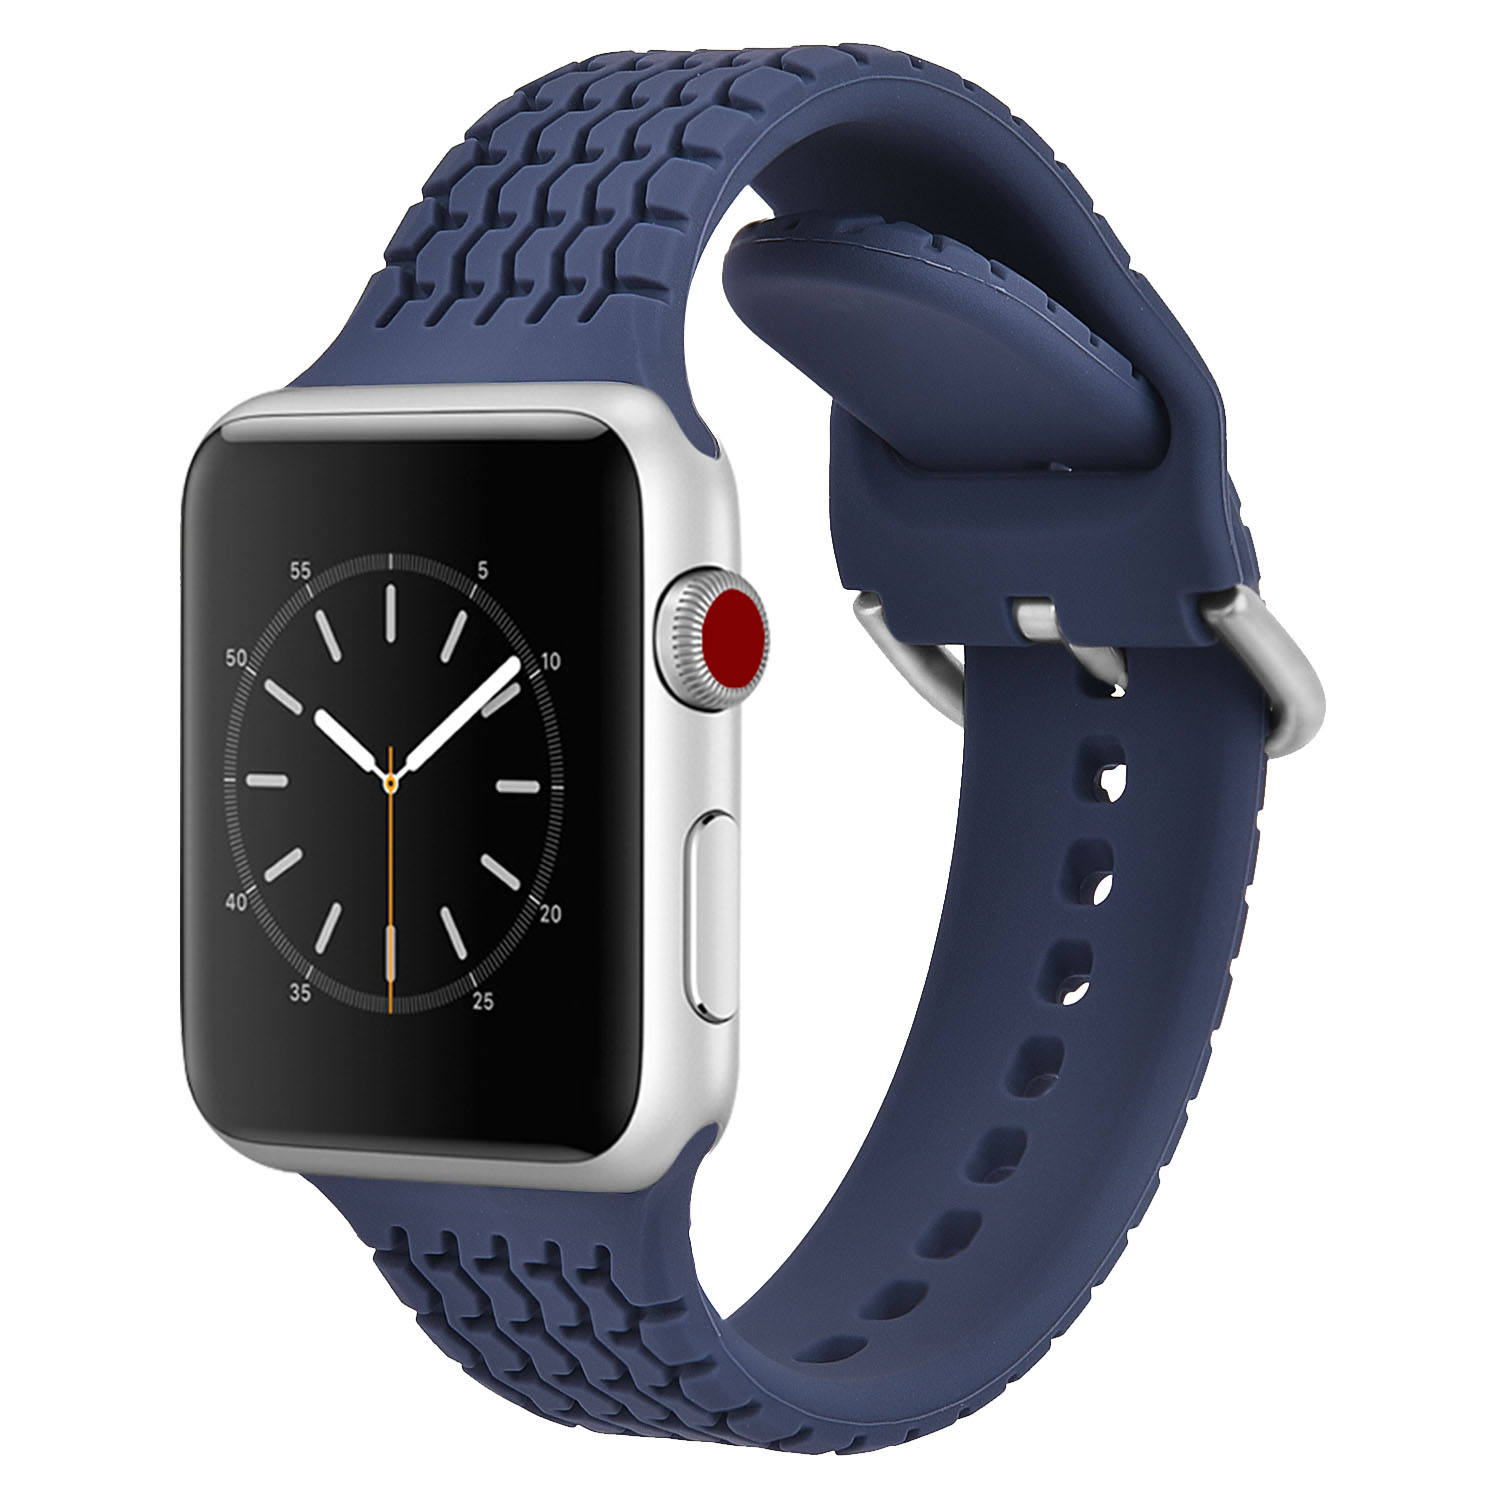 Fashion Cool Tire Grain Silicone Sport Band For Apple Watch Series 3 4 5 6/SE 38mm 40mm 42mm 44mm